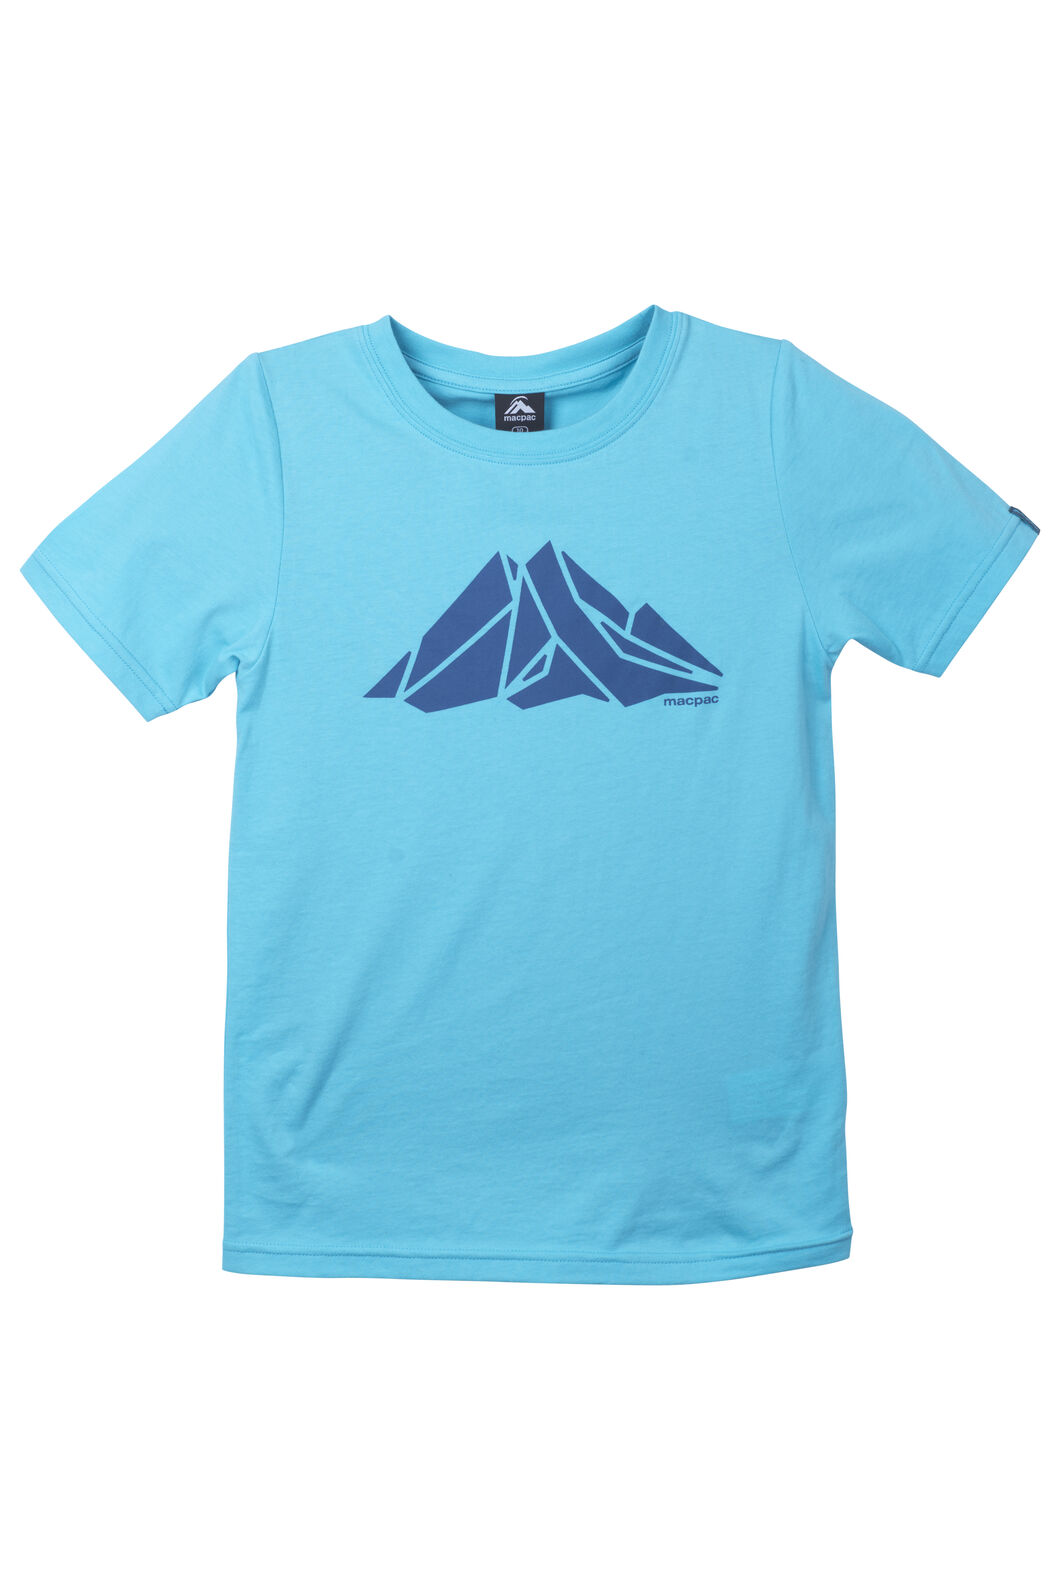 Macpac Screen Print Organic Cotton Tee - Kids', Blue Curacao, hi-res